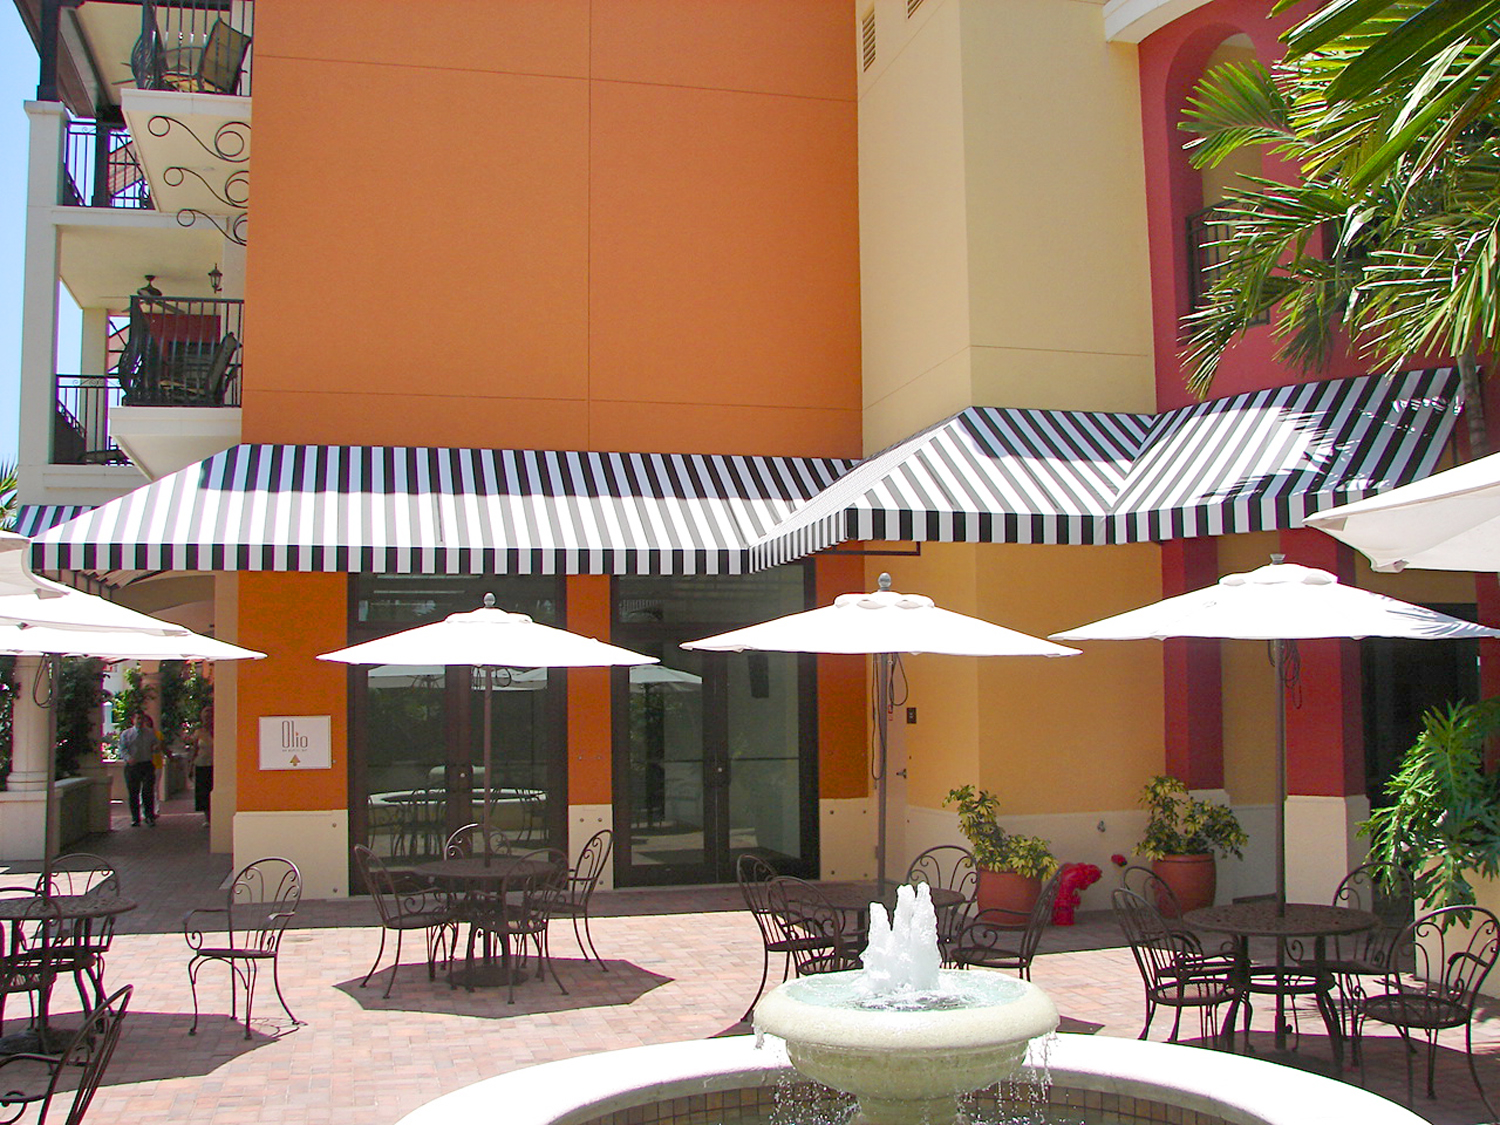 custom_fixed_awning_32.jpg